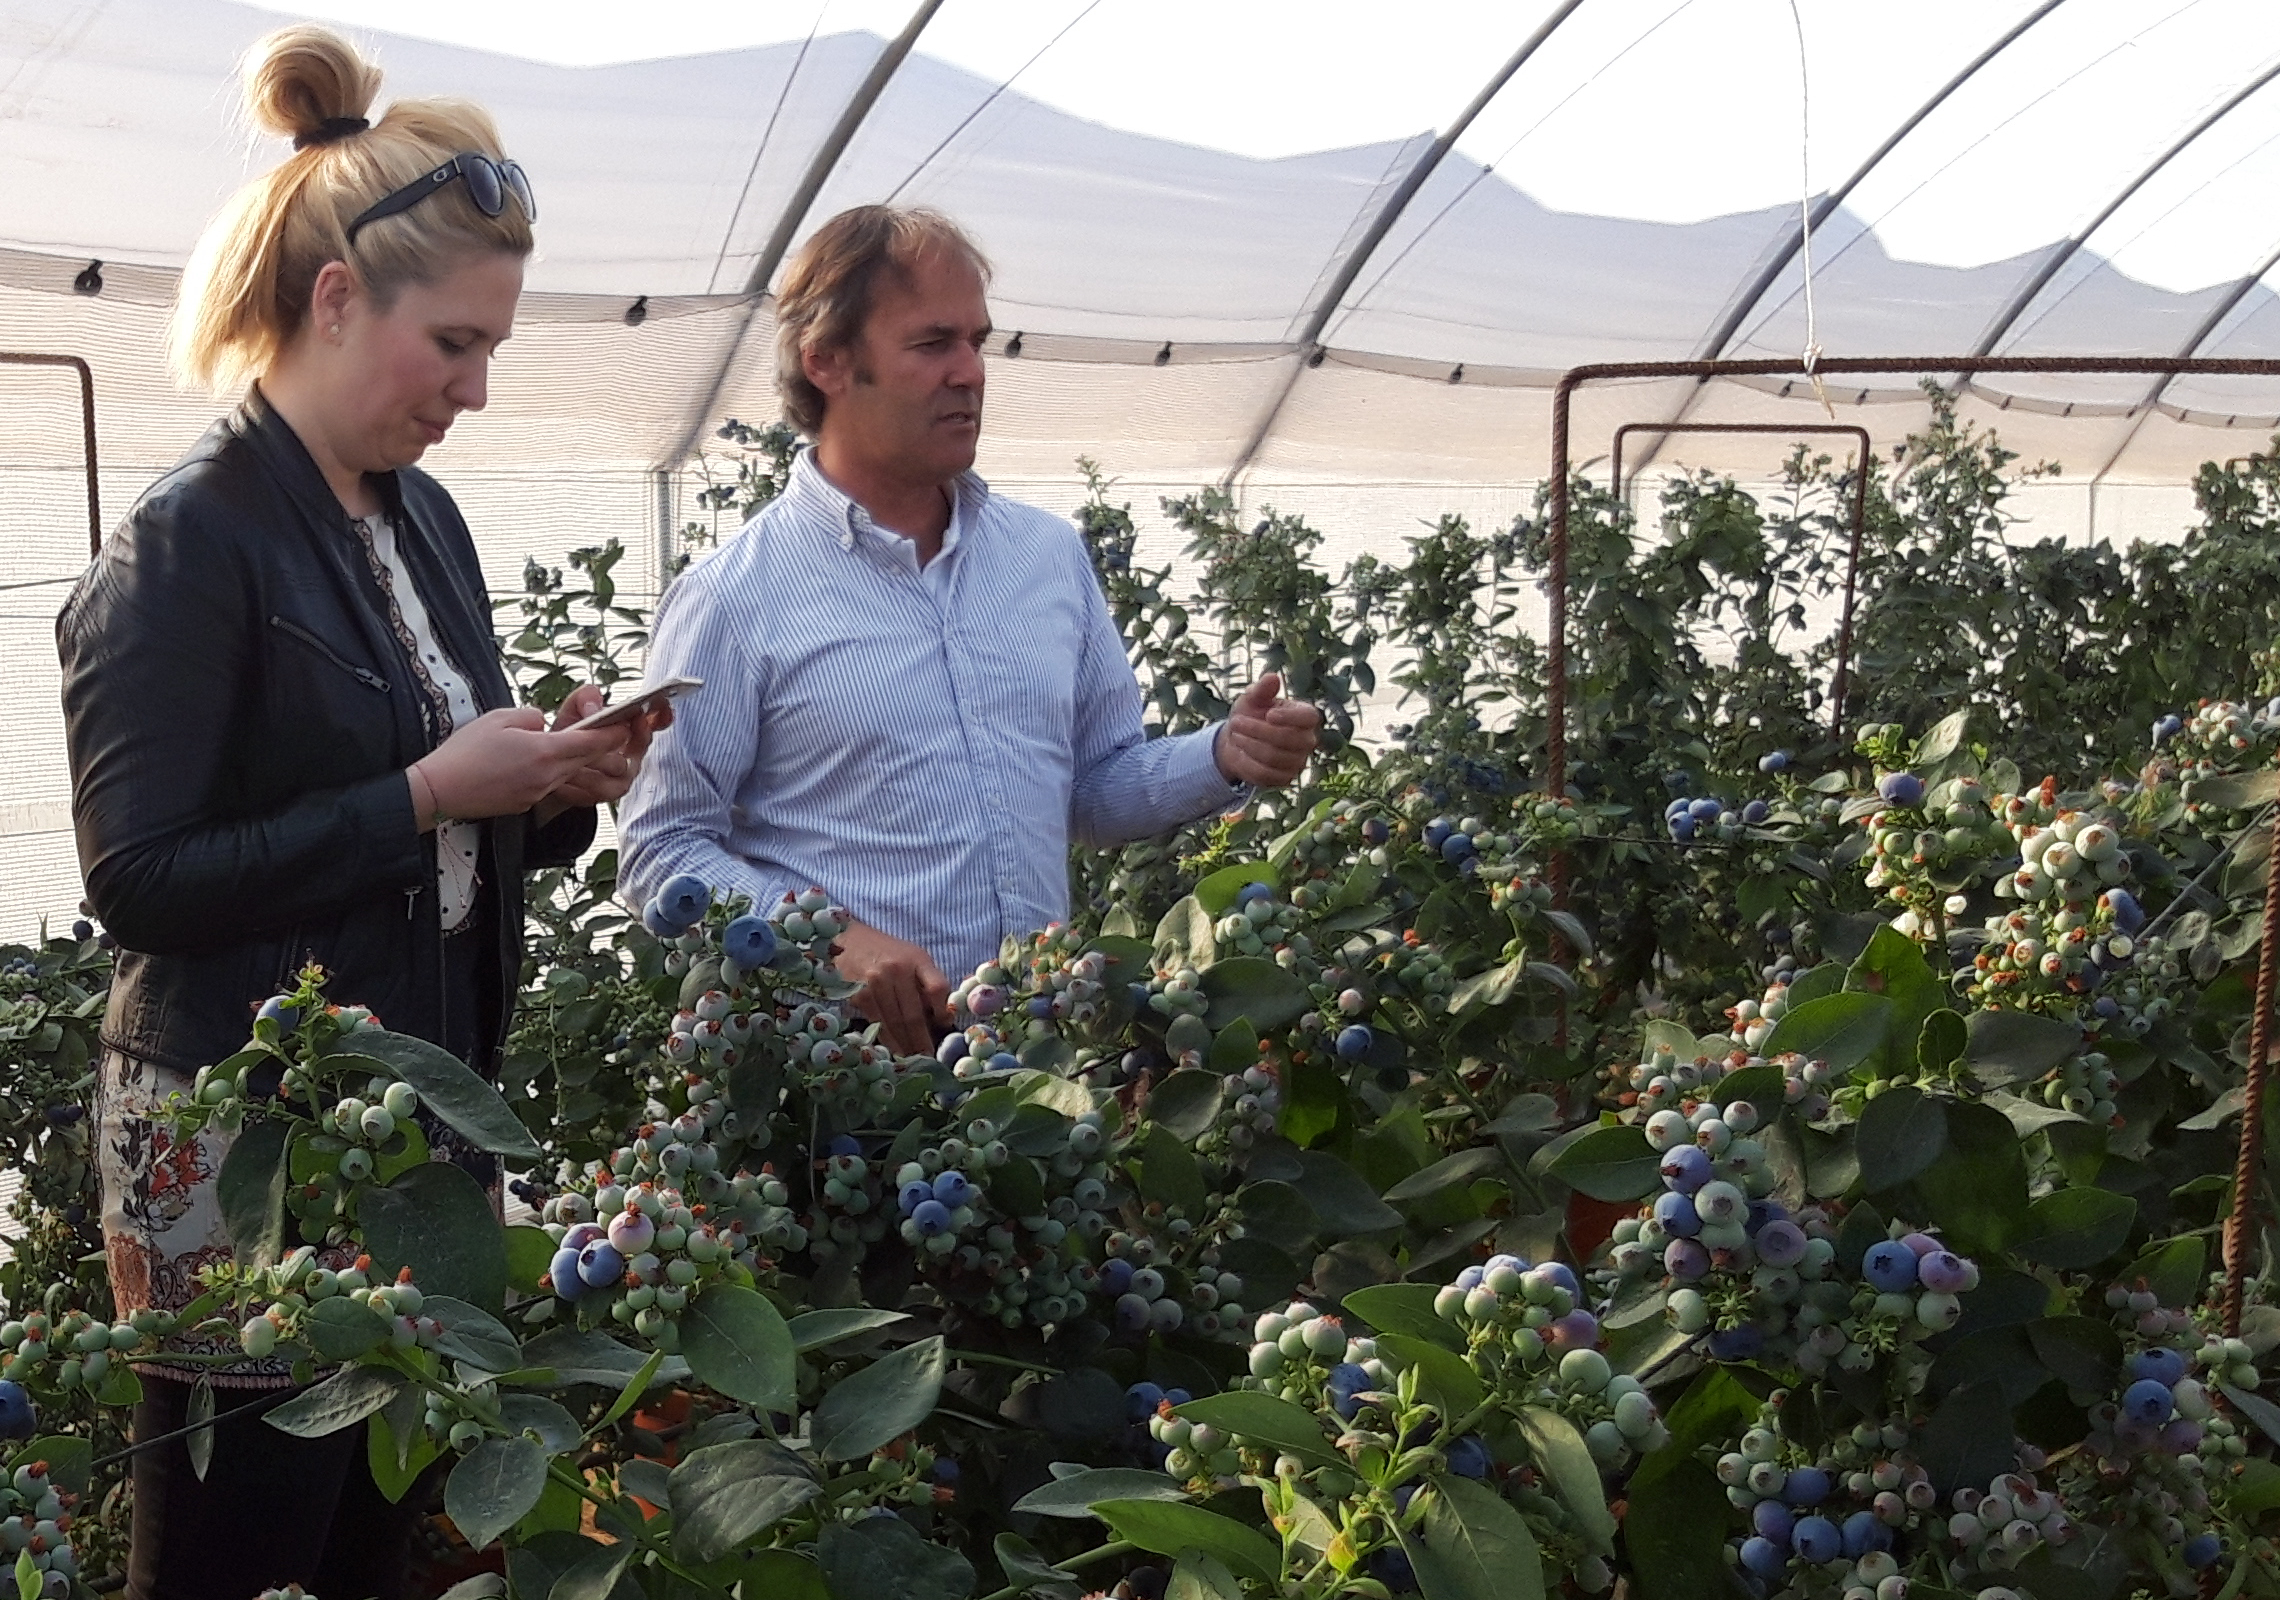 Tesco visits Planasa's facilities to see  the new blueberry varieties